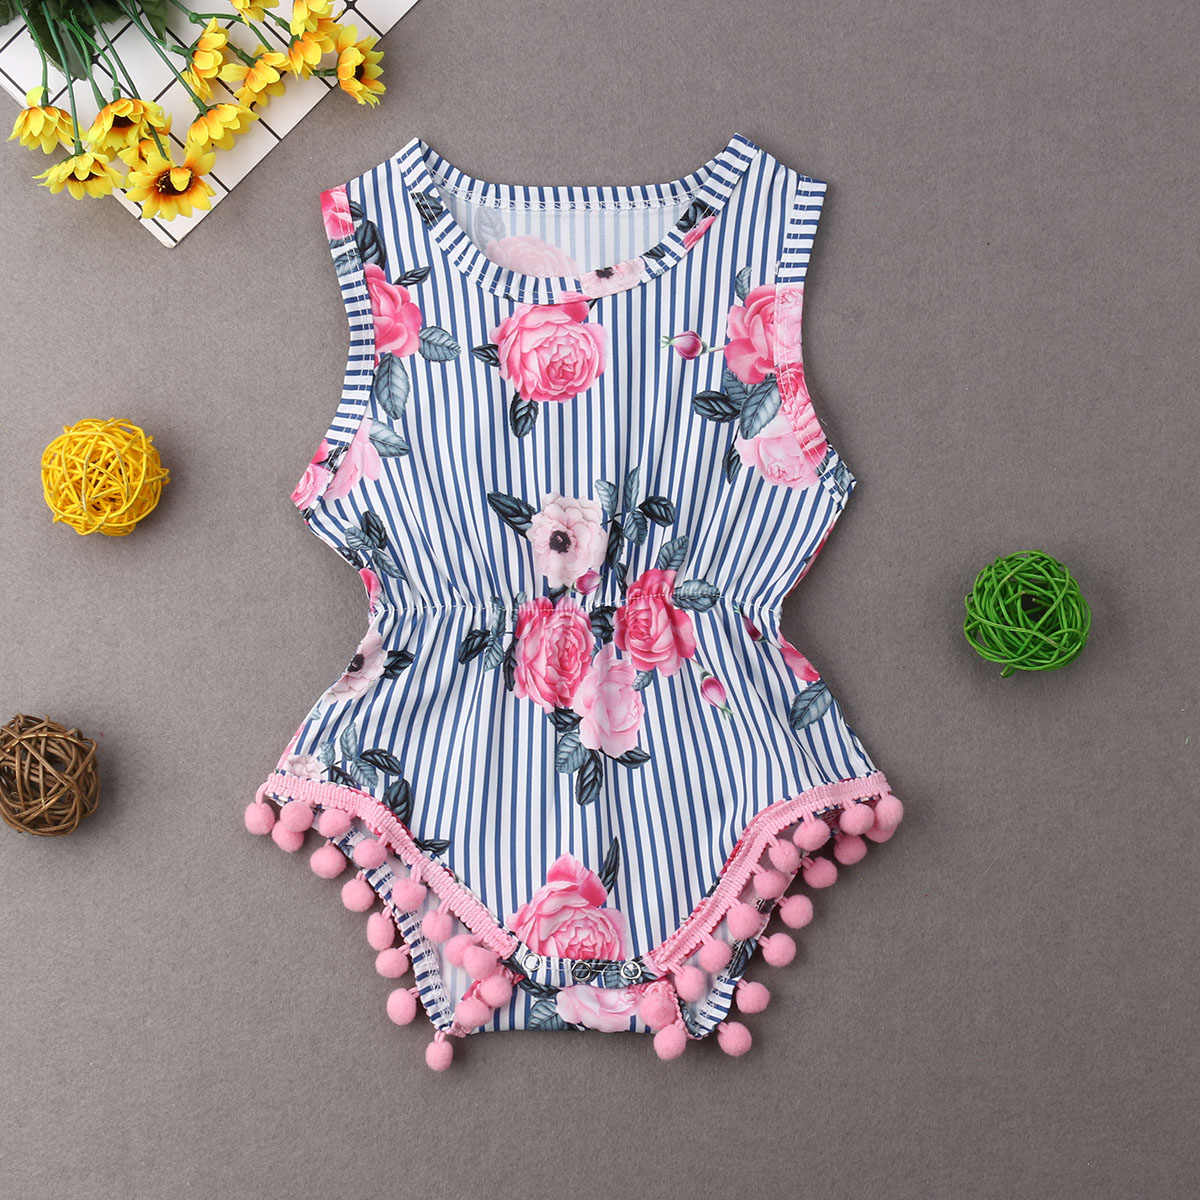 2a204bdfe262e Detail Feedback Questions about Pudcoco 2019 New Brand Newborn ...